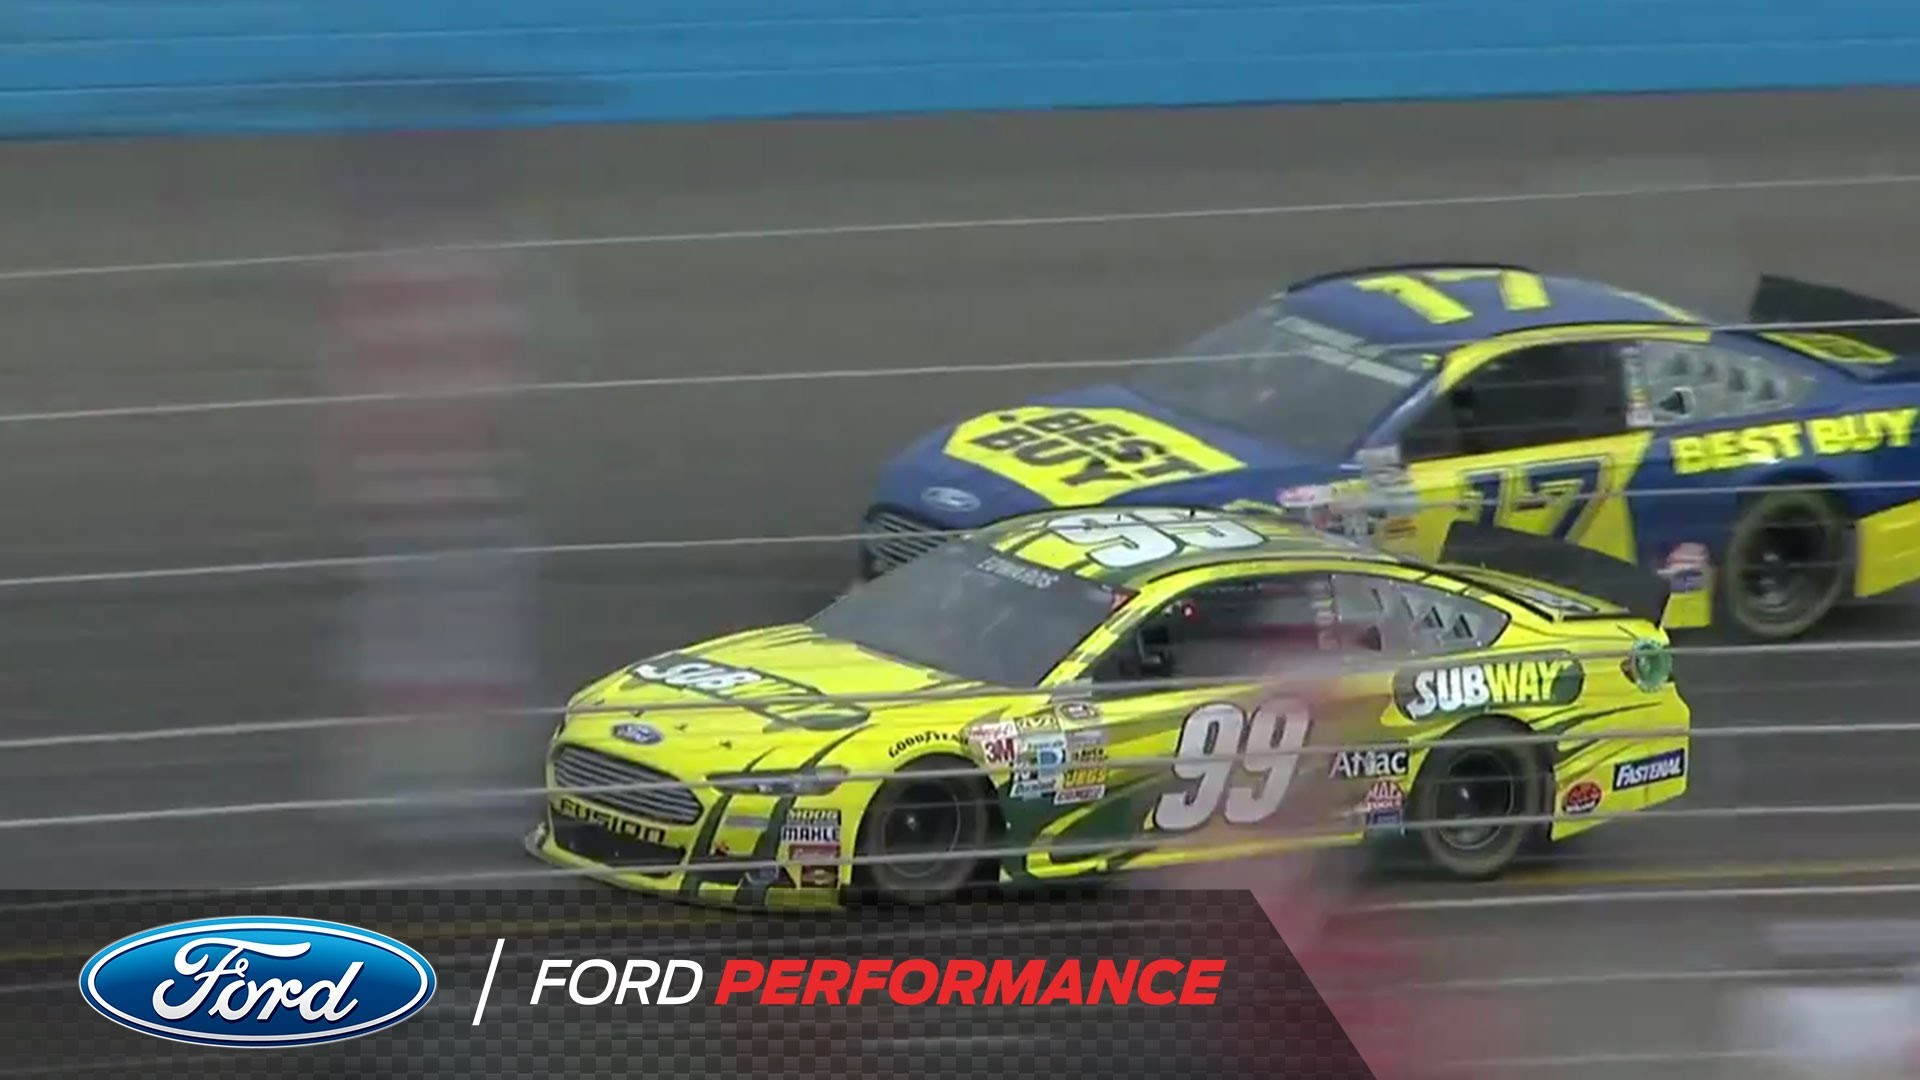 Res: 1920x1080, 2013 Ford Fusion: Carl Edwards Historic Win | NASCAR | Ford Performance